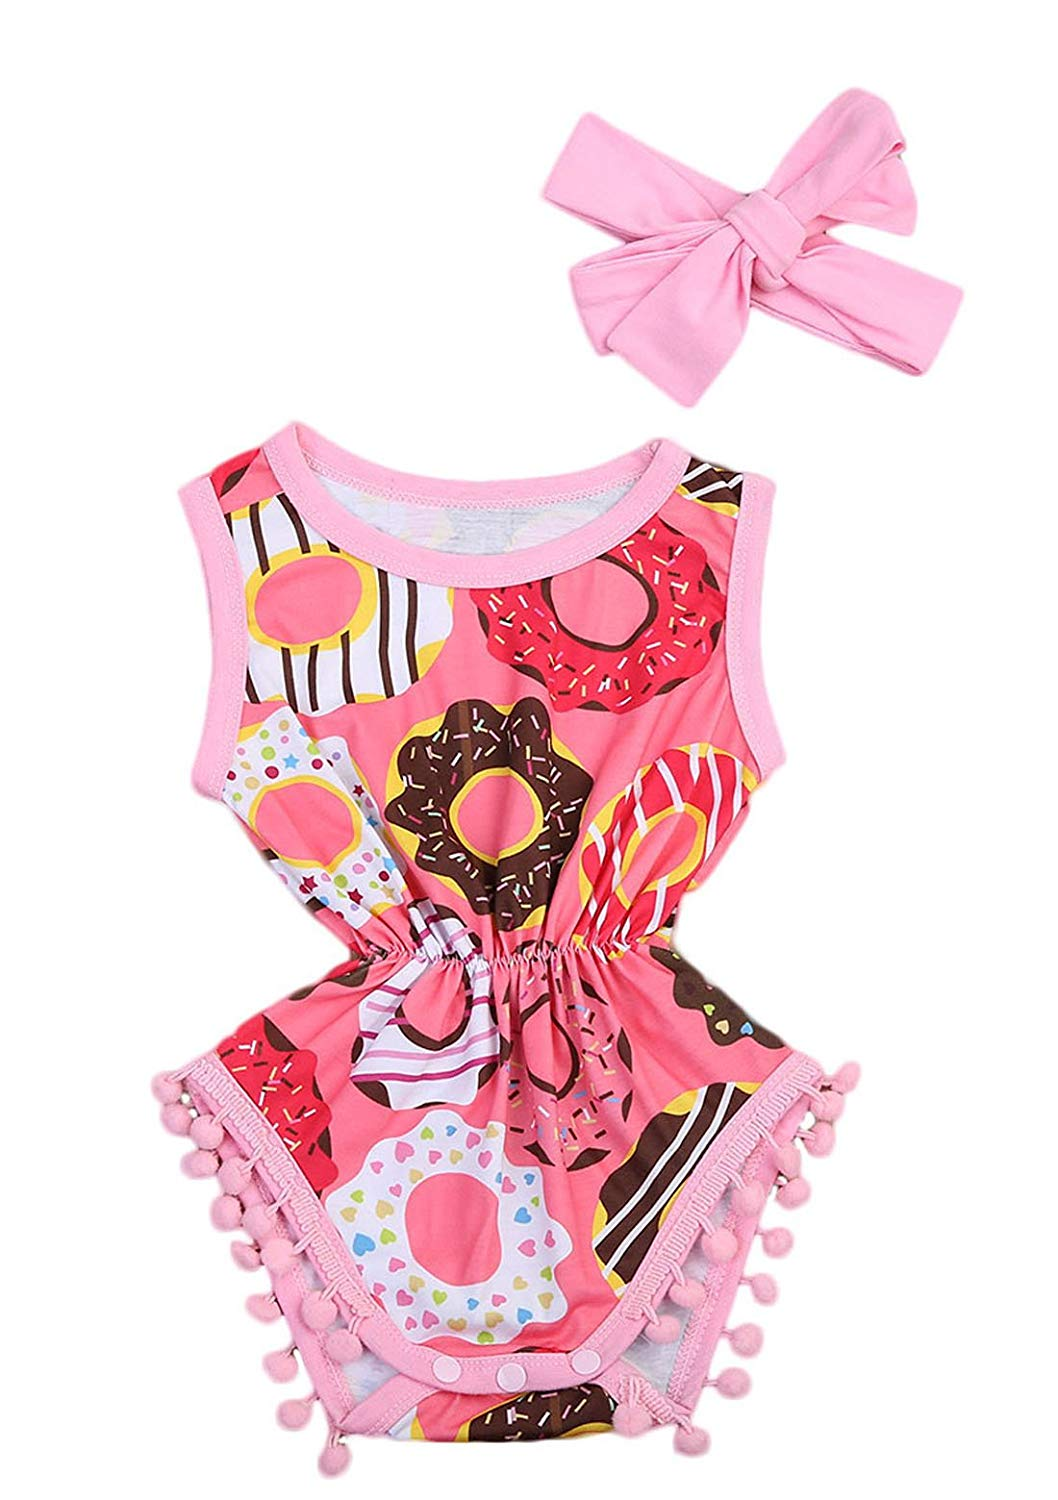 Imcute Cute Baby Girls Sleeveless Donut Tassel Romper Jumpsuit+Headband